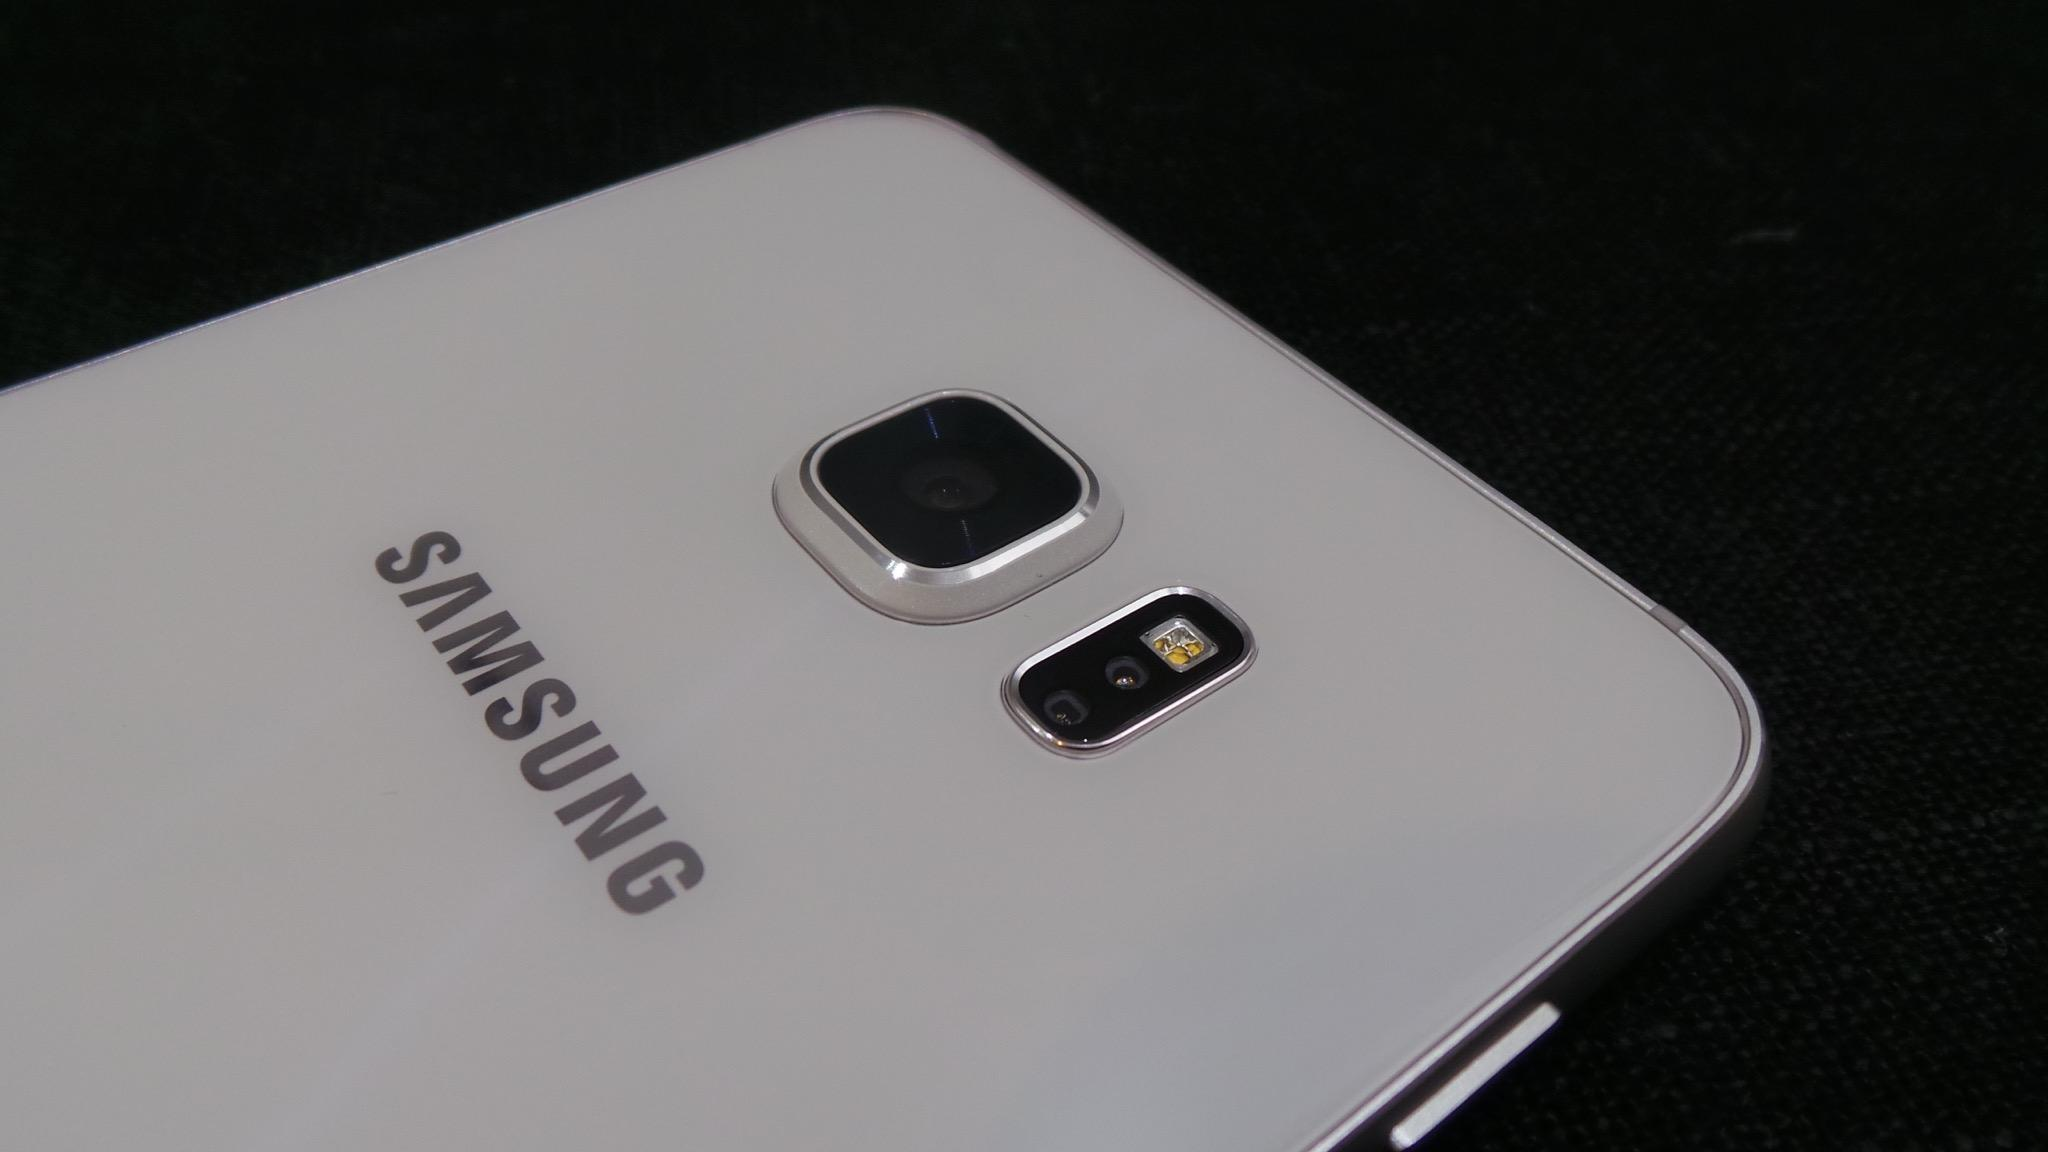 Samsung Galaxy S6 Edge Plus cámara